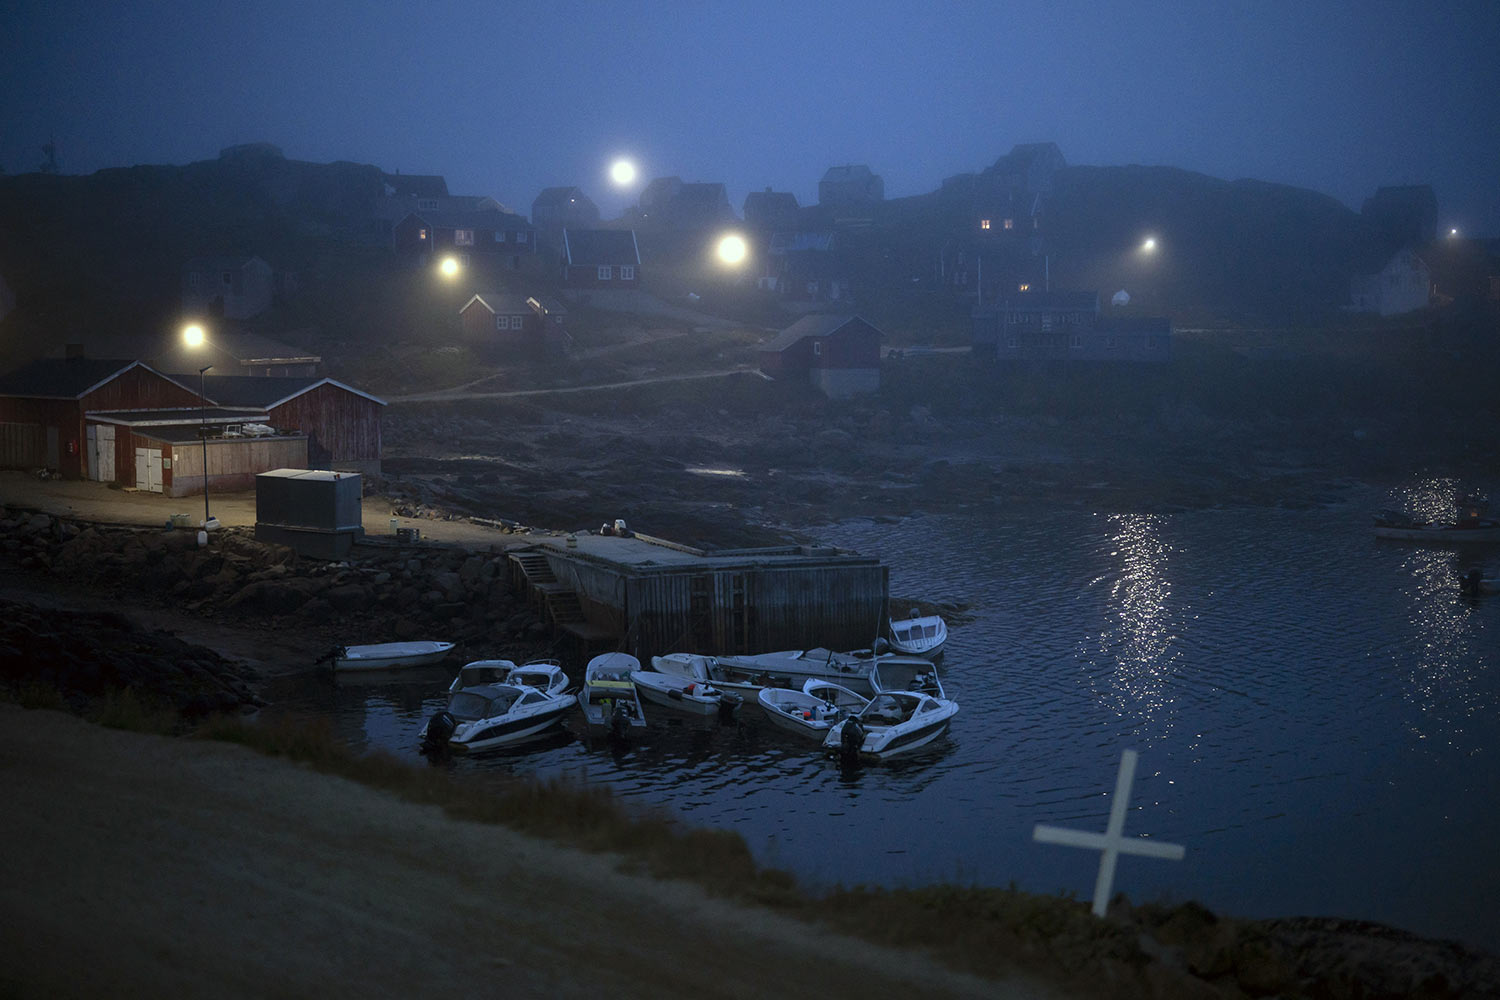 A cross sits on the side of the road as fog covers homes in Kulusuk, Greenland, early Thursday, Aug. 15, 2019. Greenland has been melting faster in the last decade and this summer, it has seen two of the biggest melts on record since 2012. (AP Photo/Felipe Dana)